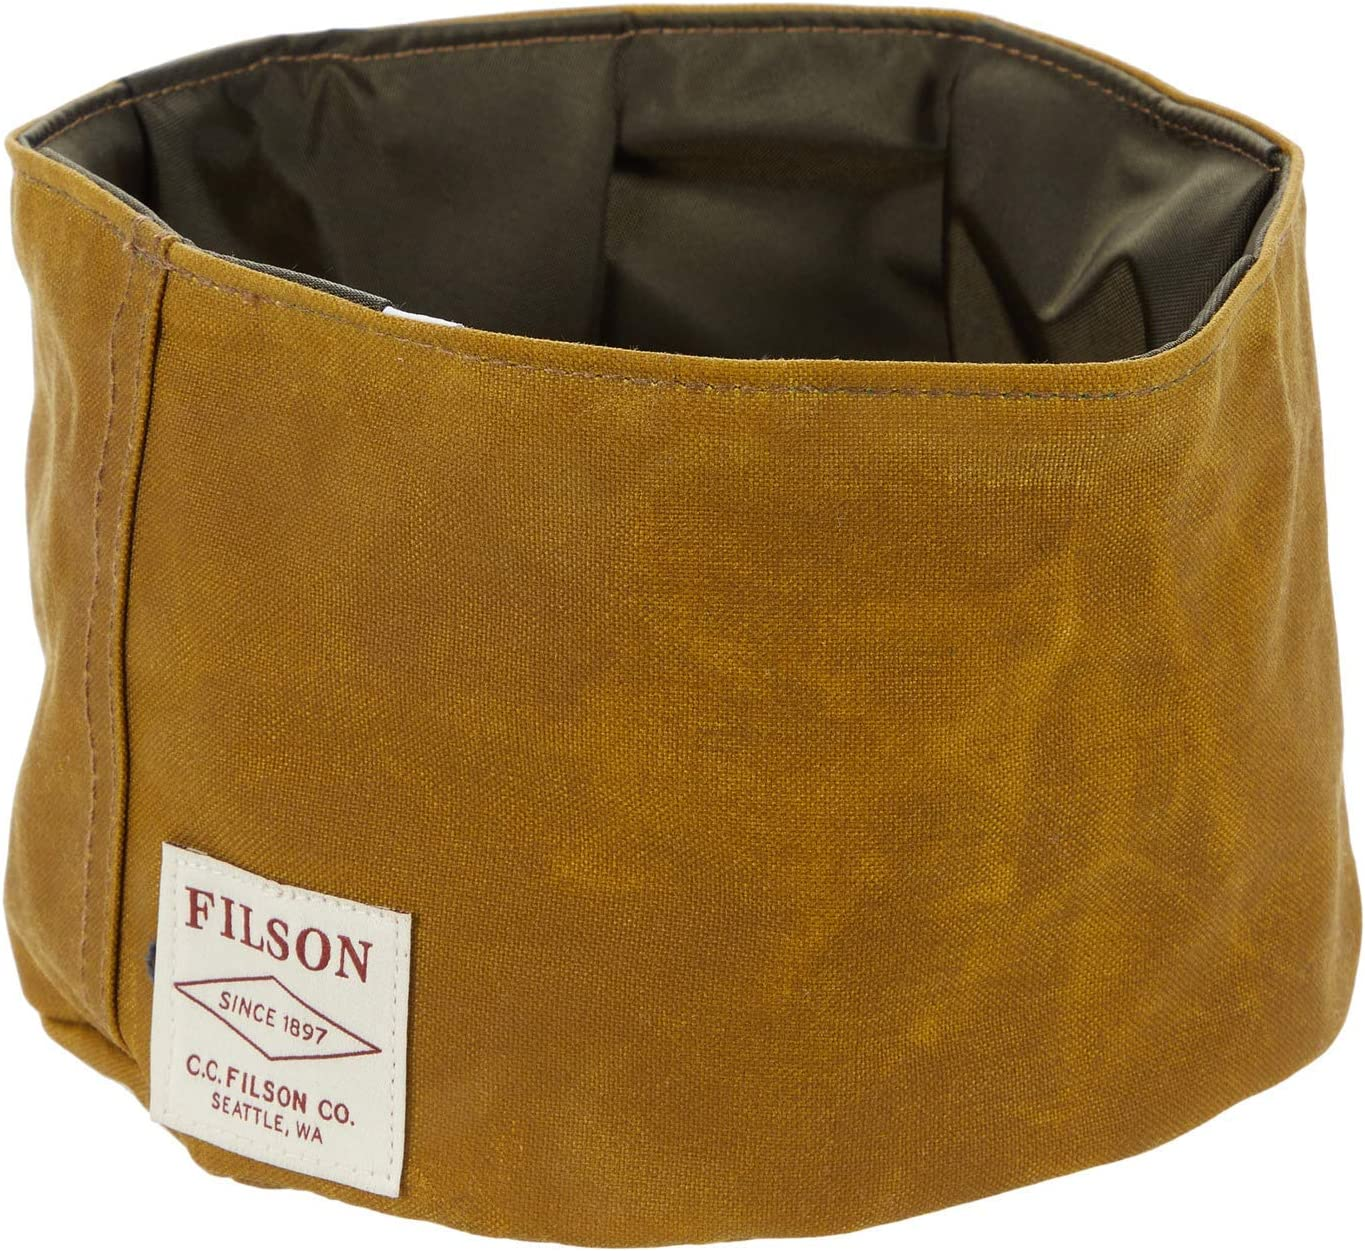 Filson Dog Free Shipping Special price New Bowl